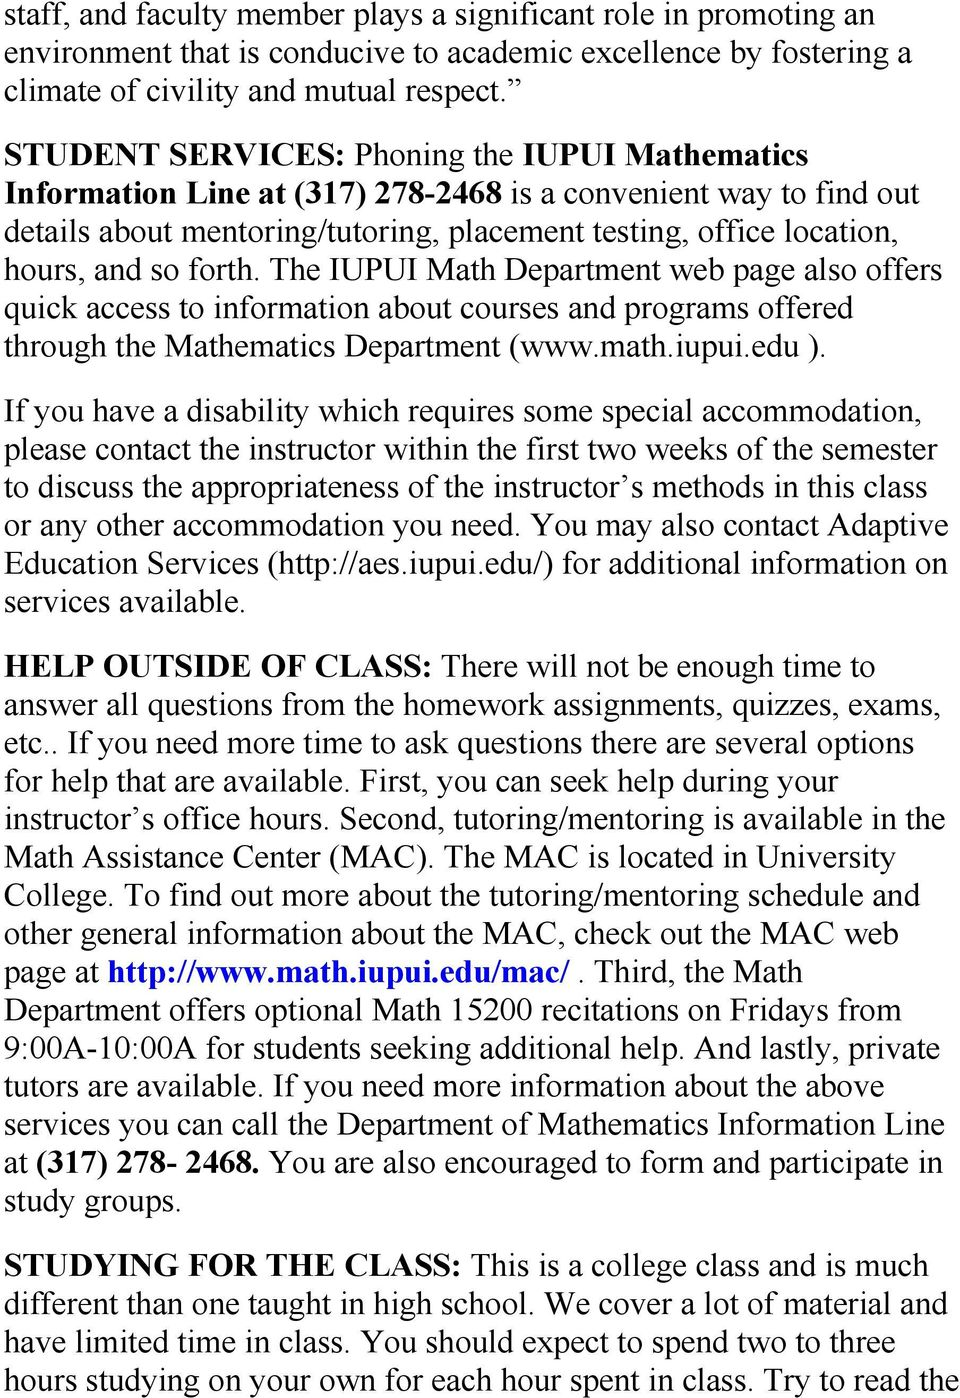 forth. The IUPUI Math Department web page also offers quick access to information about courses and programs offered through the Mathematics Department (www.math.iupui.edu ).